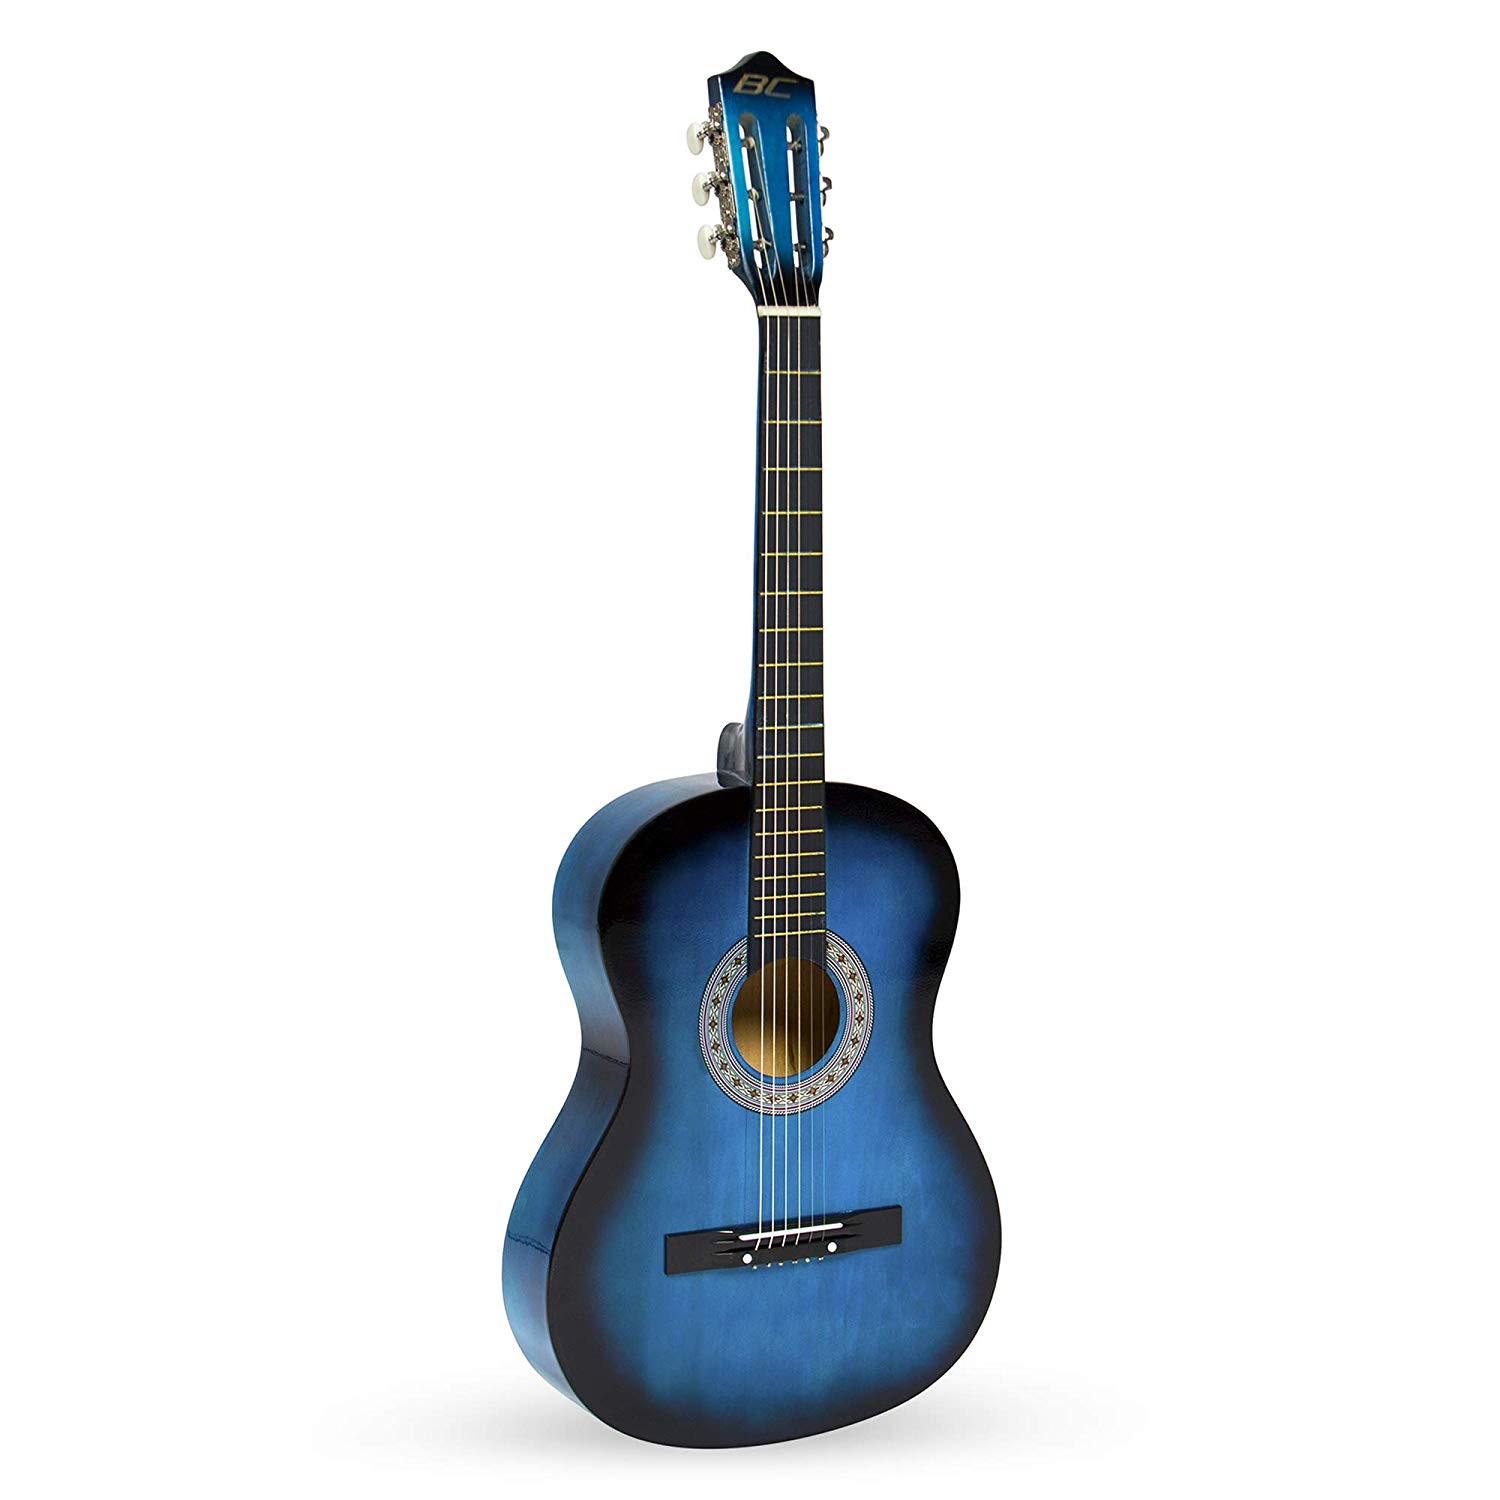 Best Choice 38inch Beginner Blue Acoustic Guitar Standing upright by itself